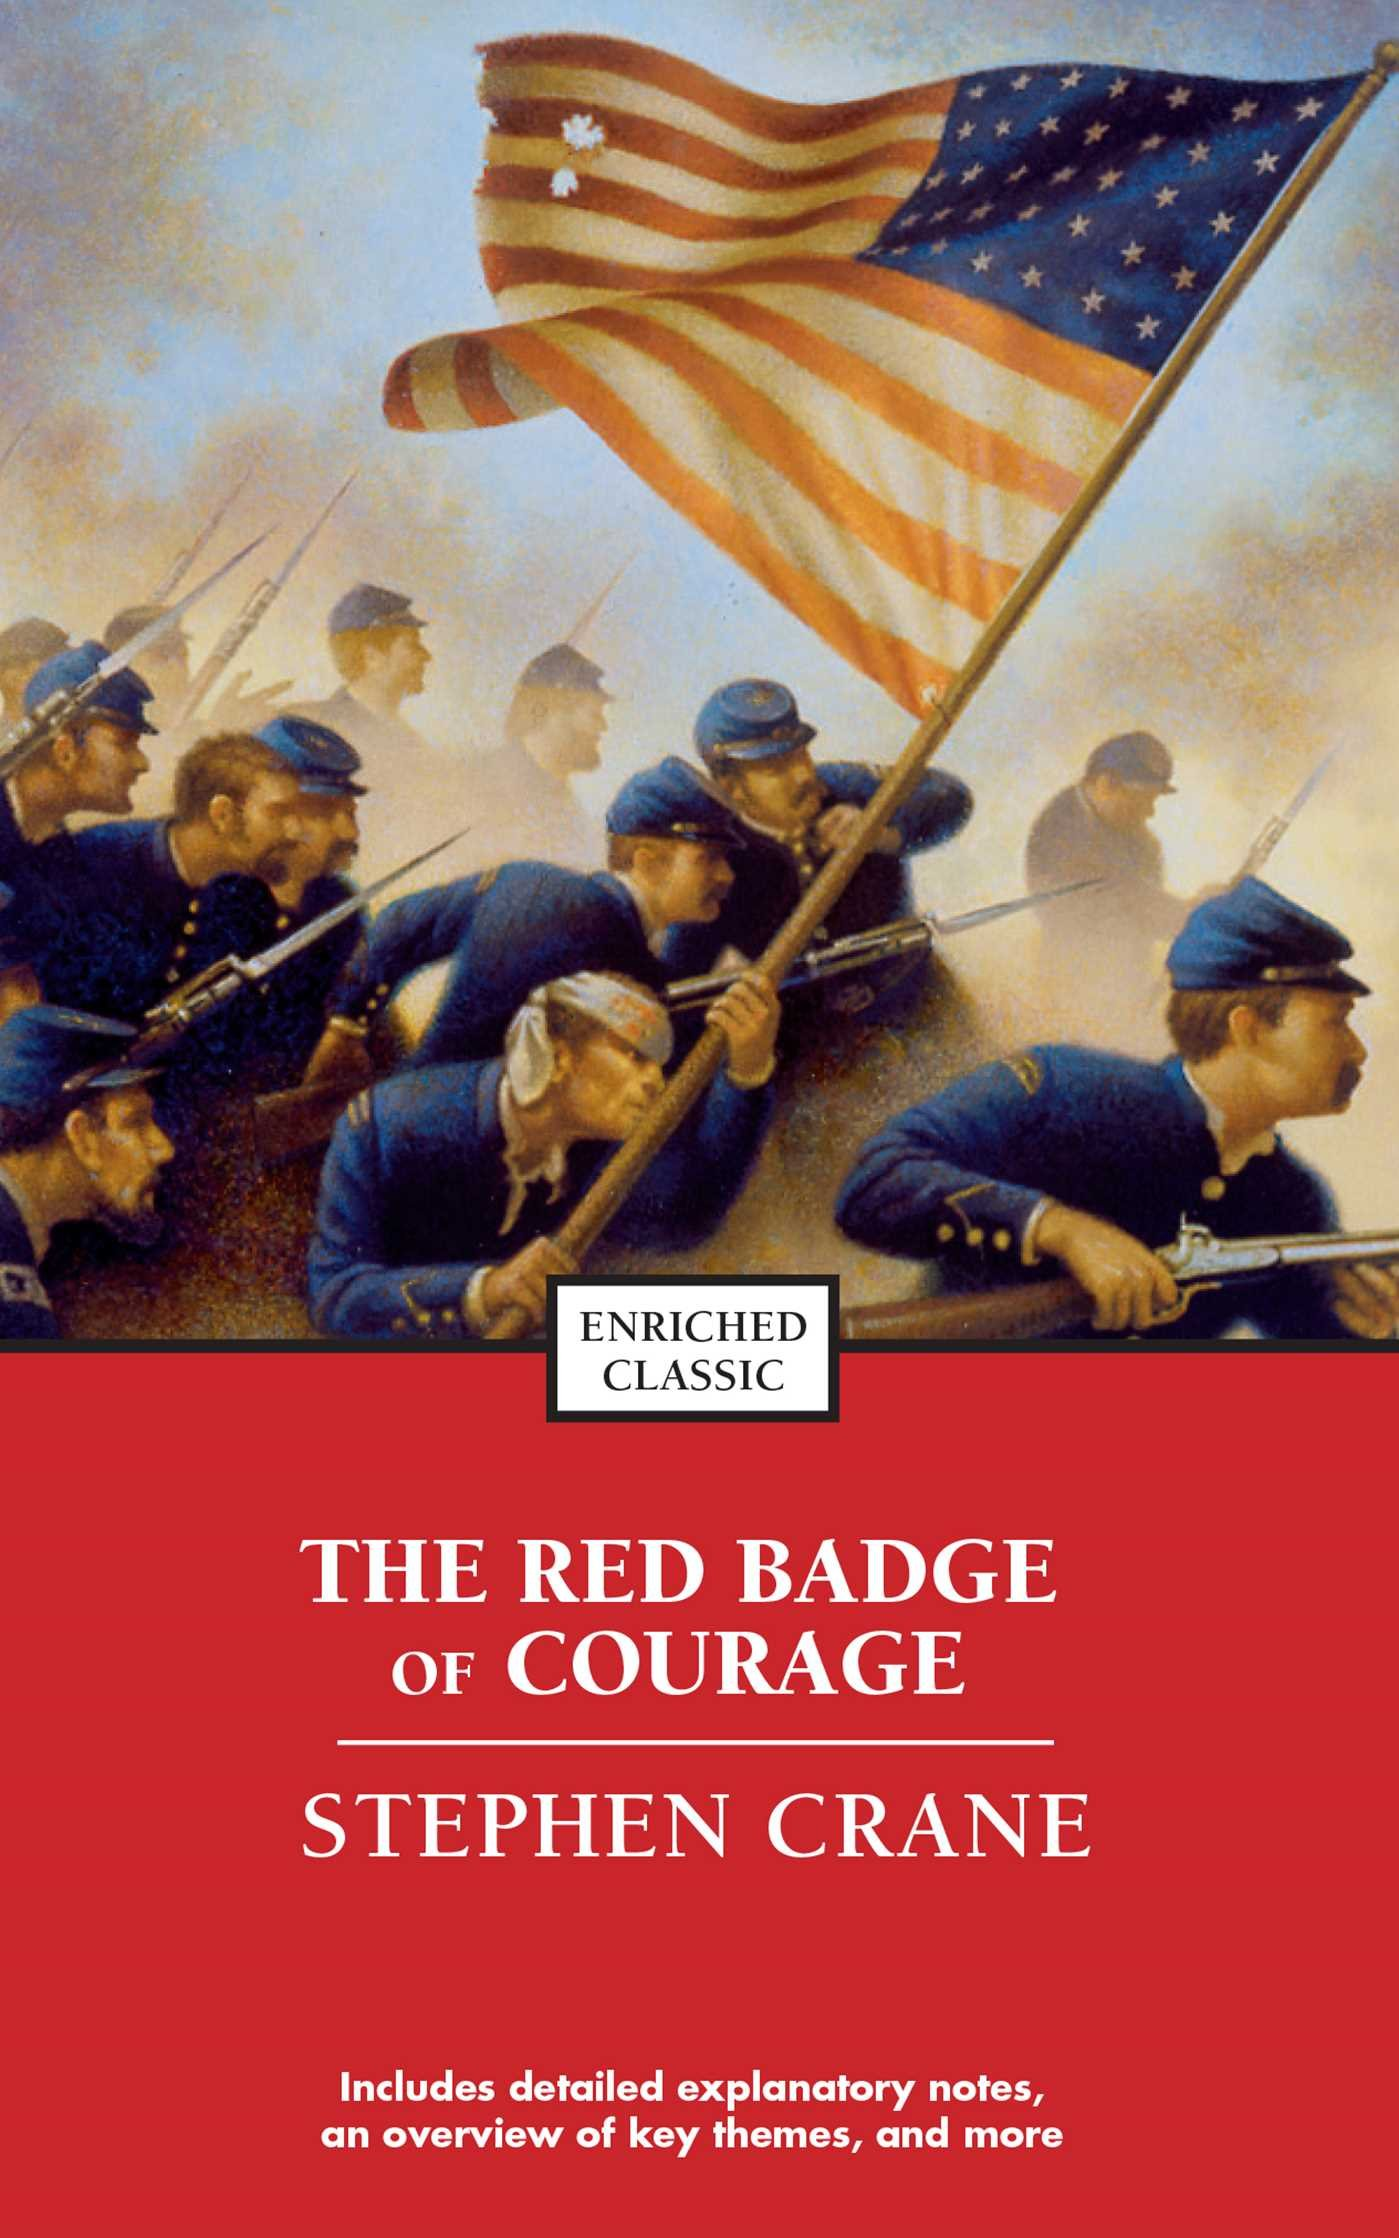 Read Online The Red Badge of Courage (Enriched Classics) PDF